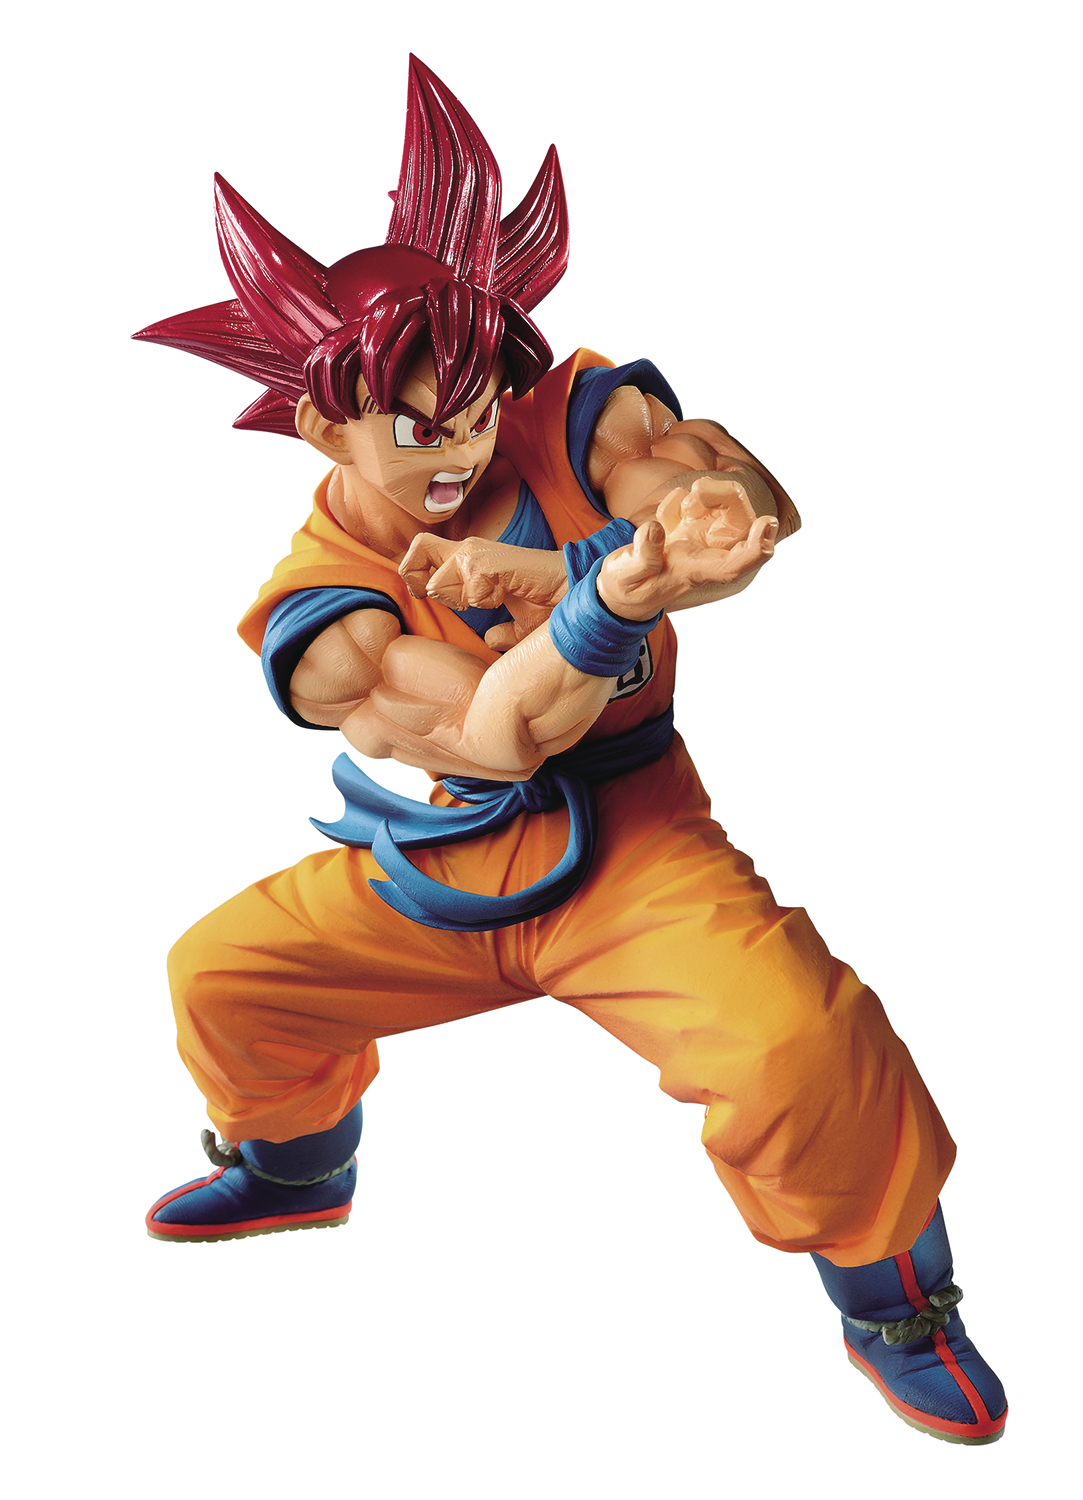 DRAGON BALL SUPER BLOOD OF SAIYANS SPECIAL VI FIG (APR198146